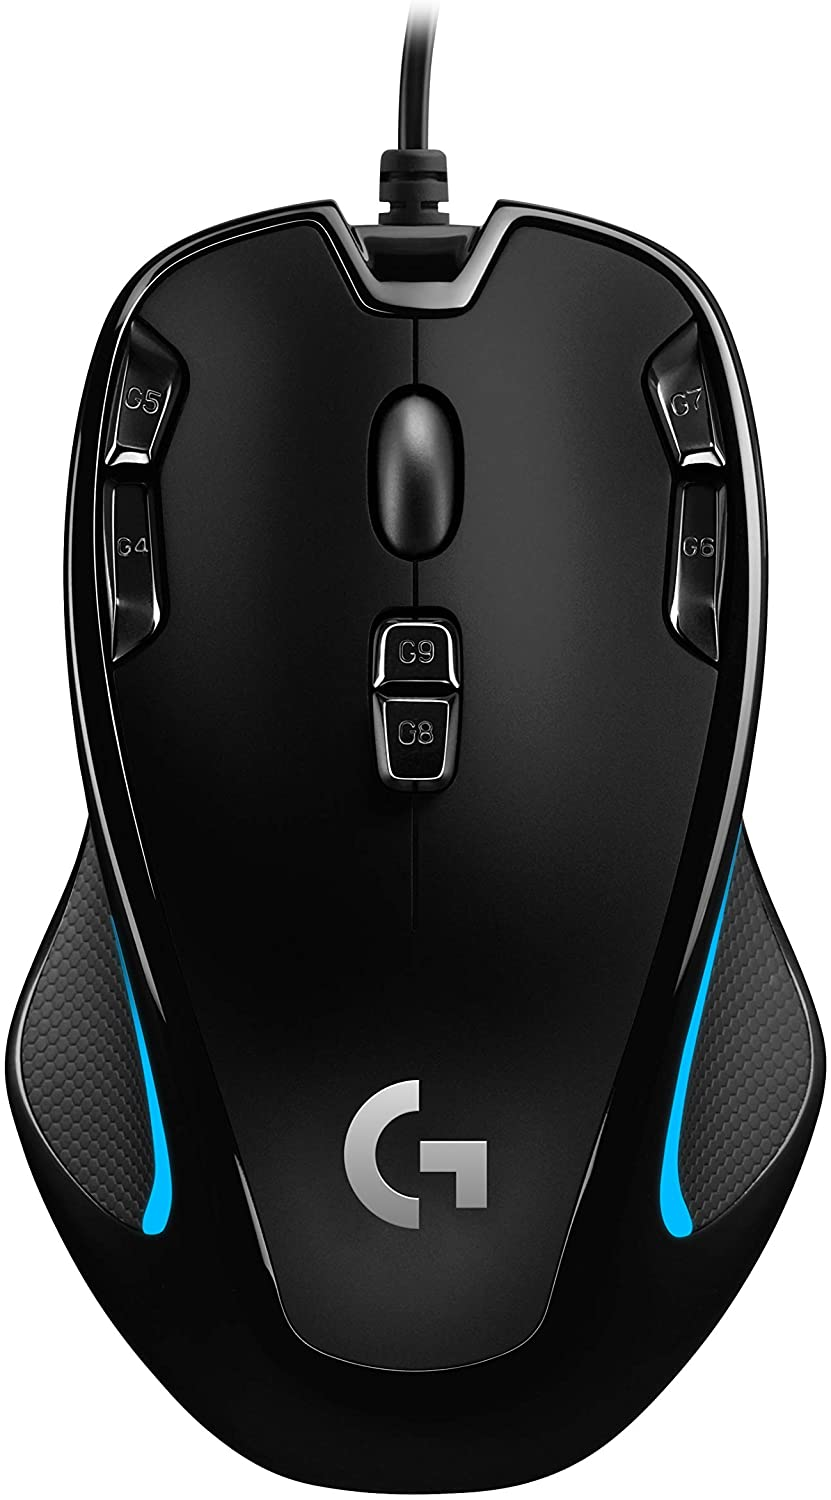 Logitech Optical G300s Ambidextrous Gaming Mouse